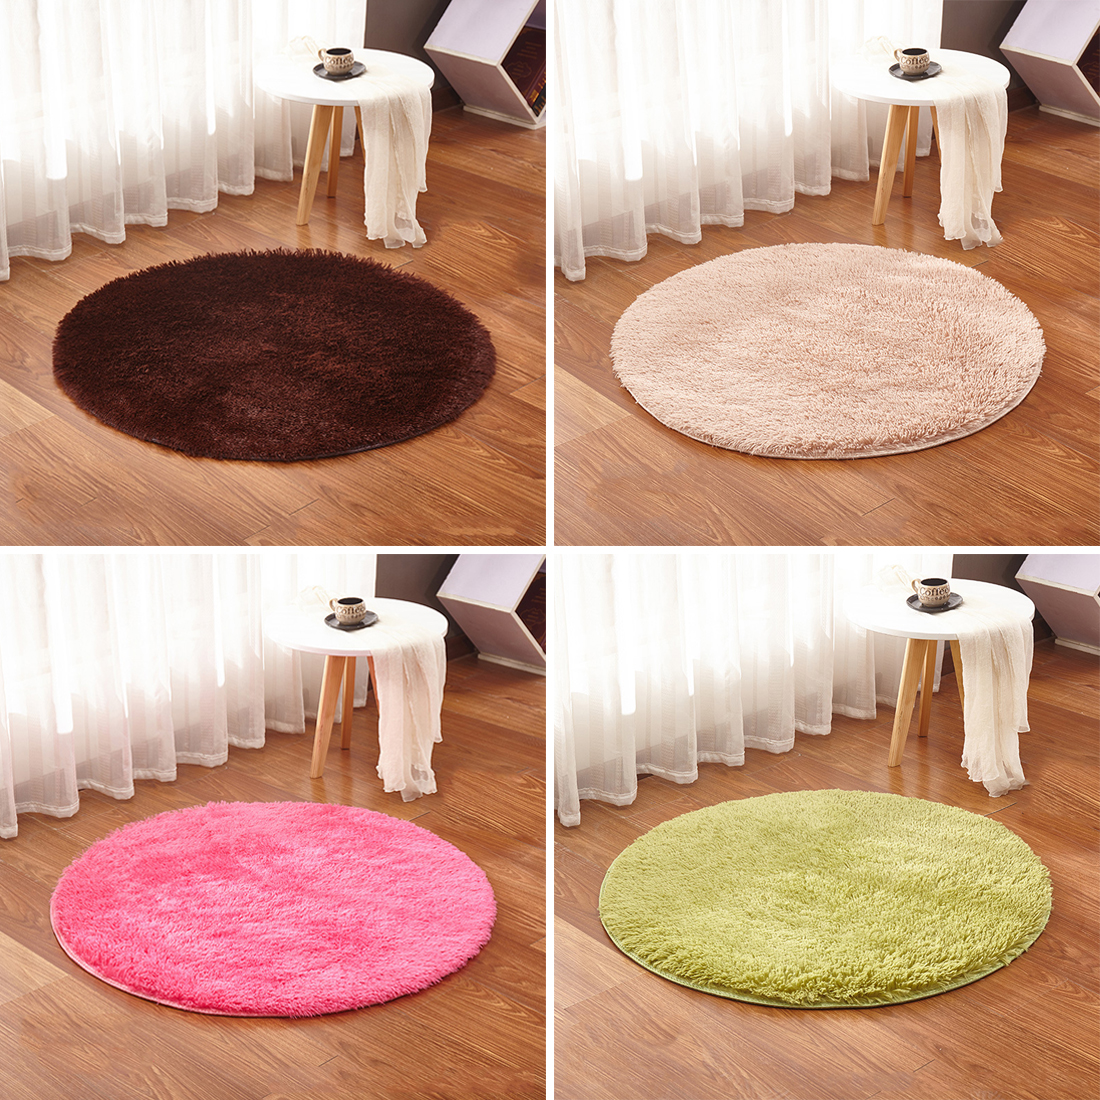 Us 1 18 20 Off Soft Living Room Fluffy Round Rug Carpet For Kilim Faux Fur Carpet Kids Room Long Plush Rugs For Bedroom Shaggy Area Rug In Rug From